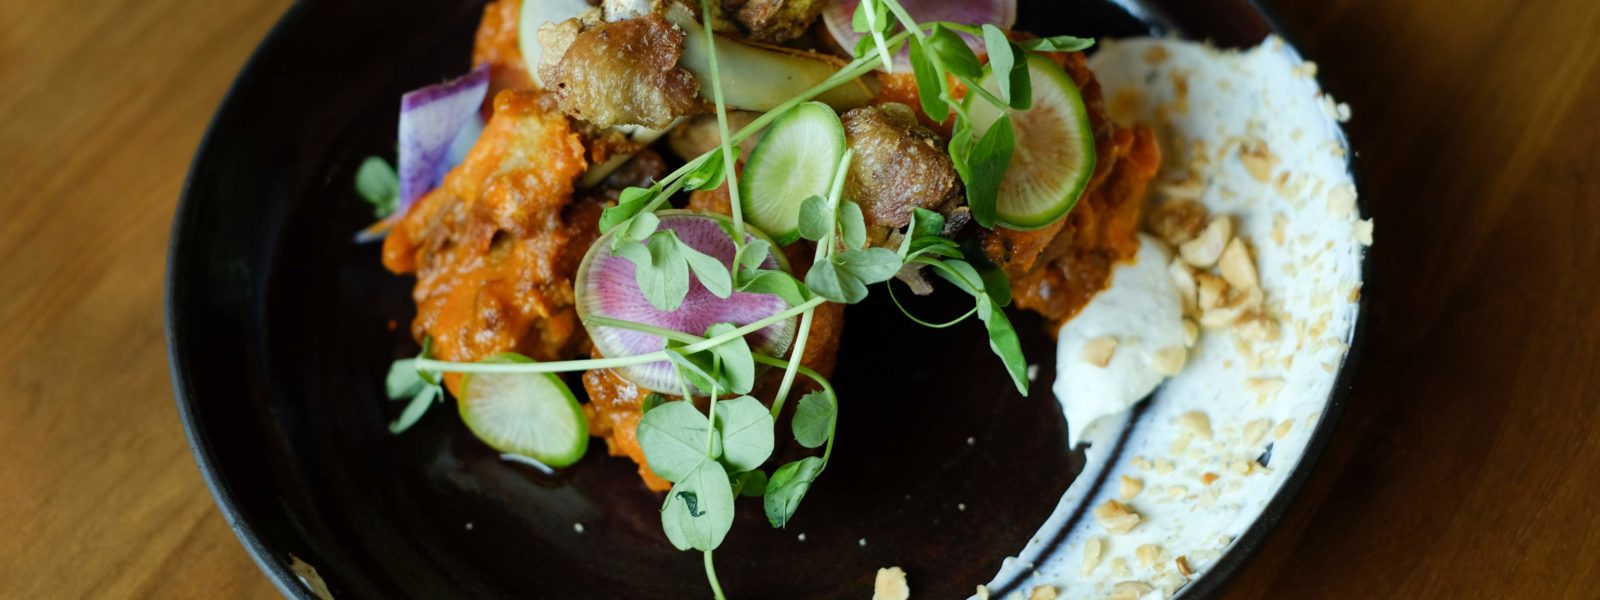 Chicken dish with micro greens, and radishes.